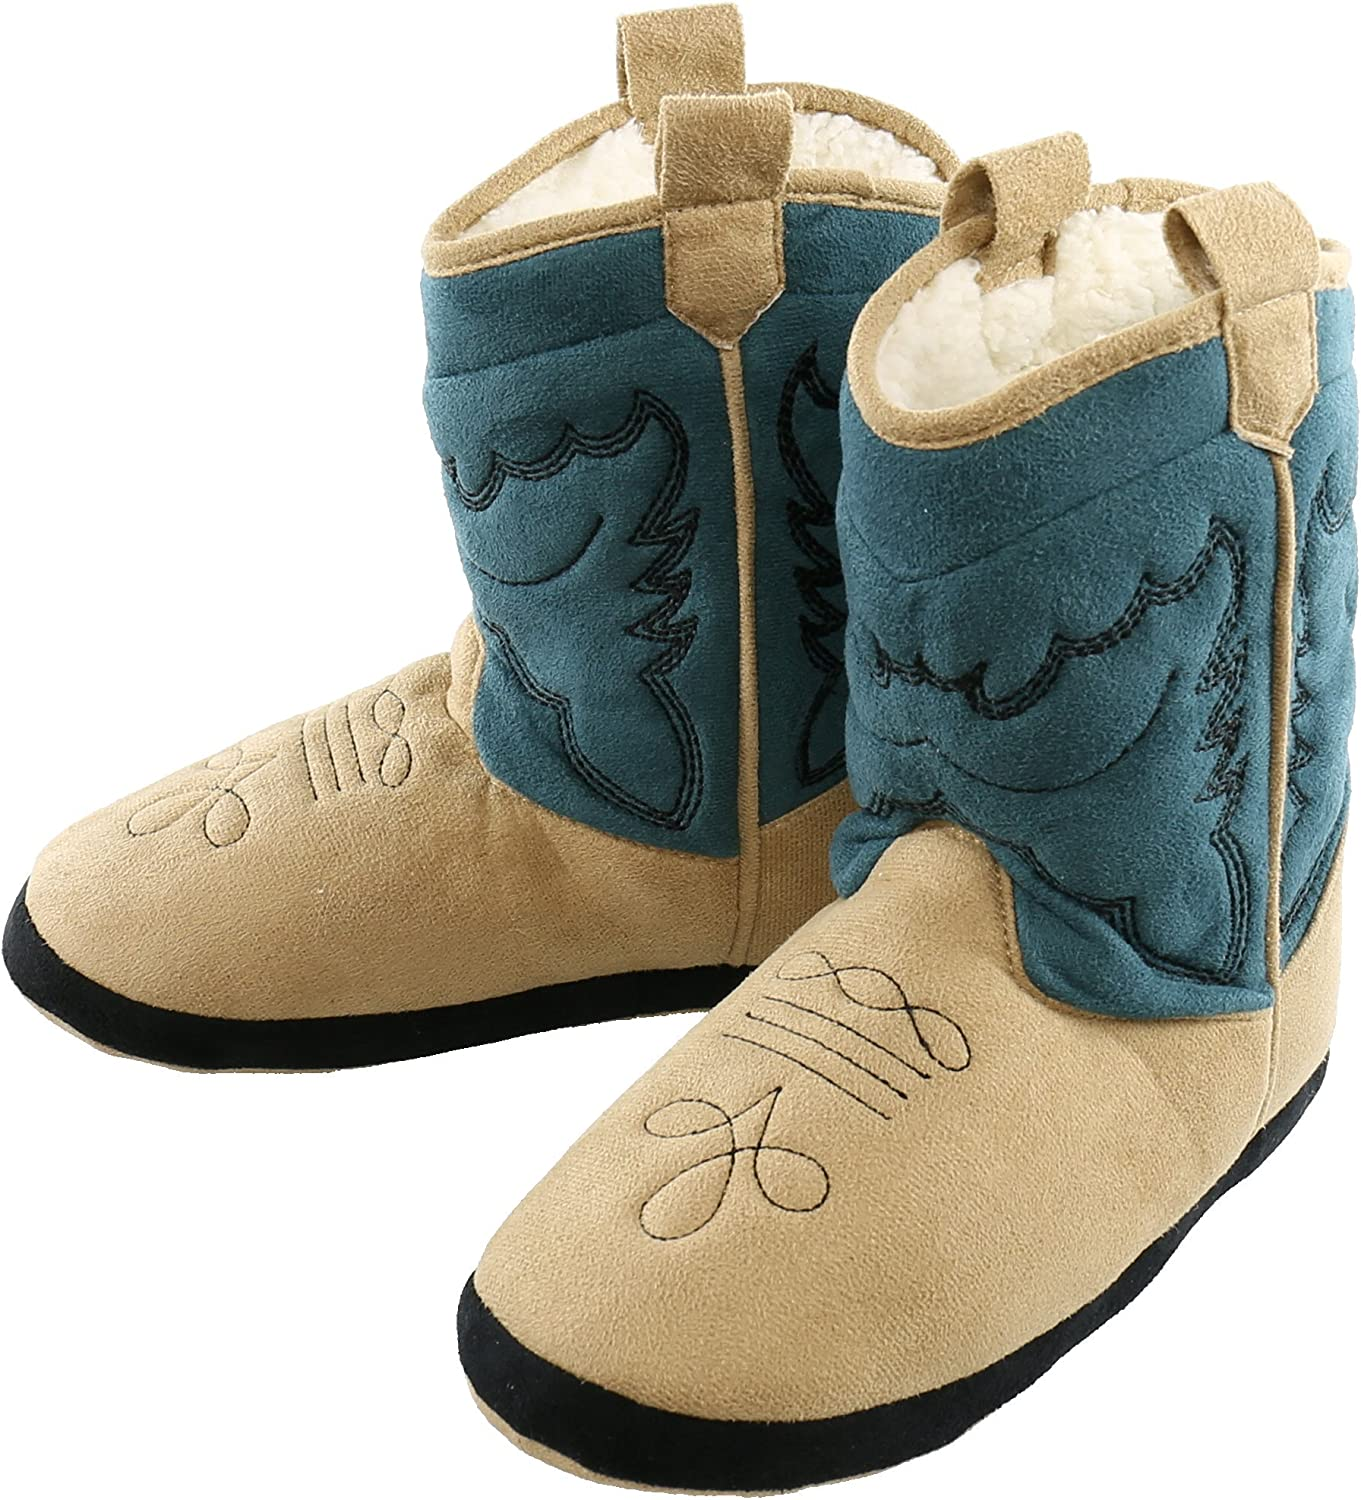 Lazy One Unisex Blue Cowboy Bootie Slippers